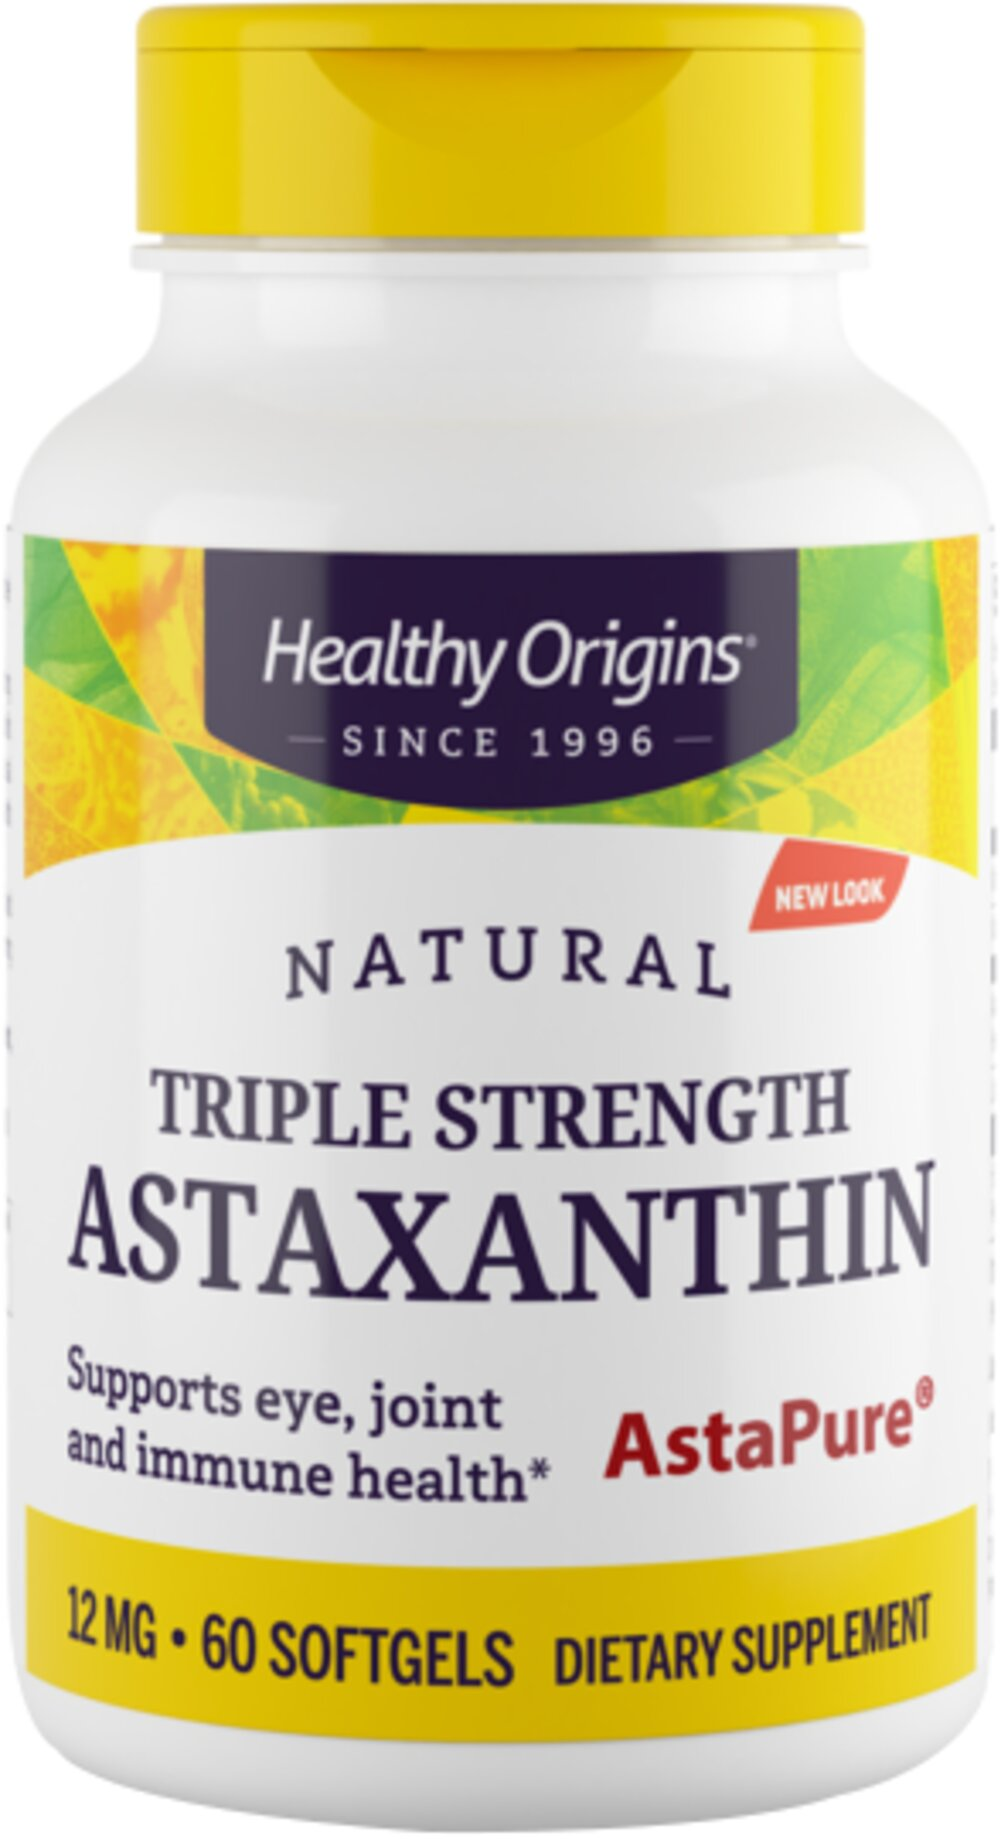 Triple Strength Astaxanthin 12 mg <p>From the Manufacturer's Label:</p><ul><li>Natural</li><li>Non-GMO<br /></li></ul><p>Healthy Origins Natural Bioastin Astaxanthin is a carotenoid produced from Haematococcus Pluvialis microalgae. One Natural Triple Strength Astaxanthin softgel capsule features a total 12 mg of Astaxanthin, three times the strength of Healthy Origins regular Astaxanthin, BioAstin Astaxanthin.</p><ul>&lt